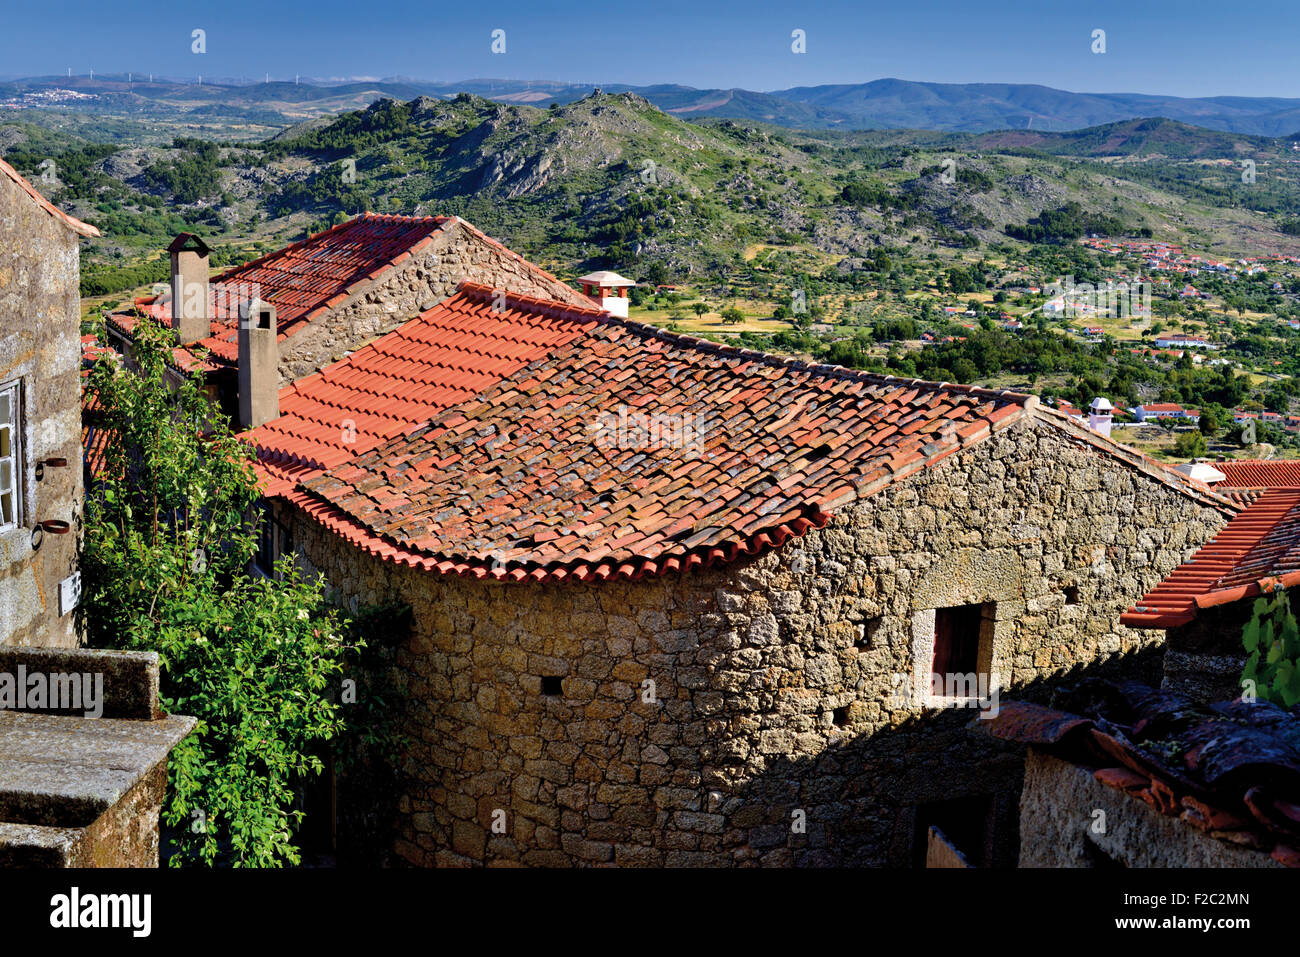 Portugal: Stone houses and view in mountain village Monsanto - Stock Image